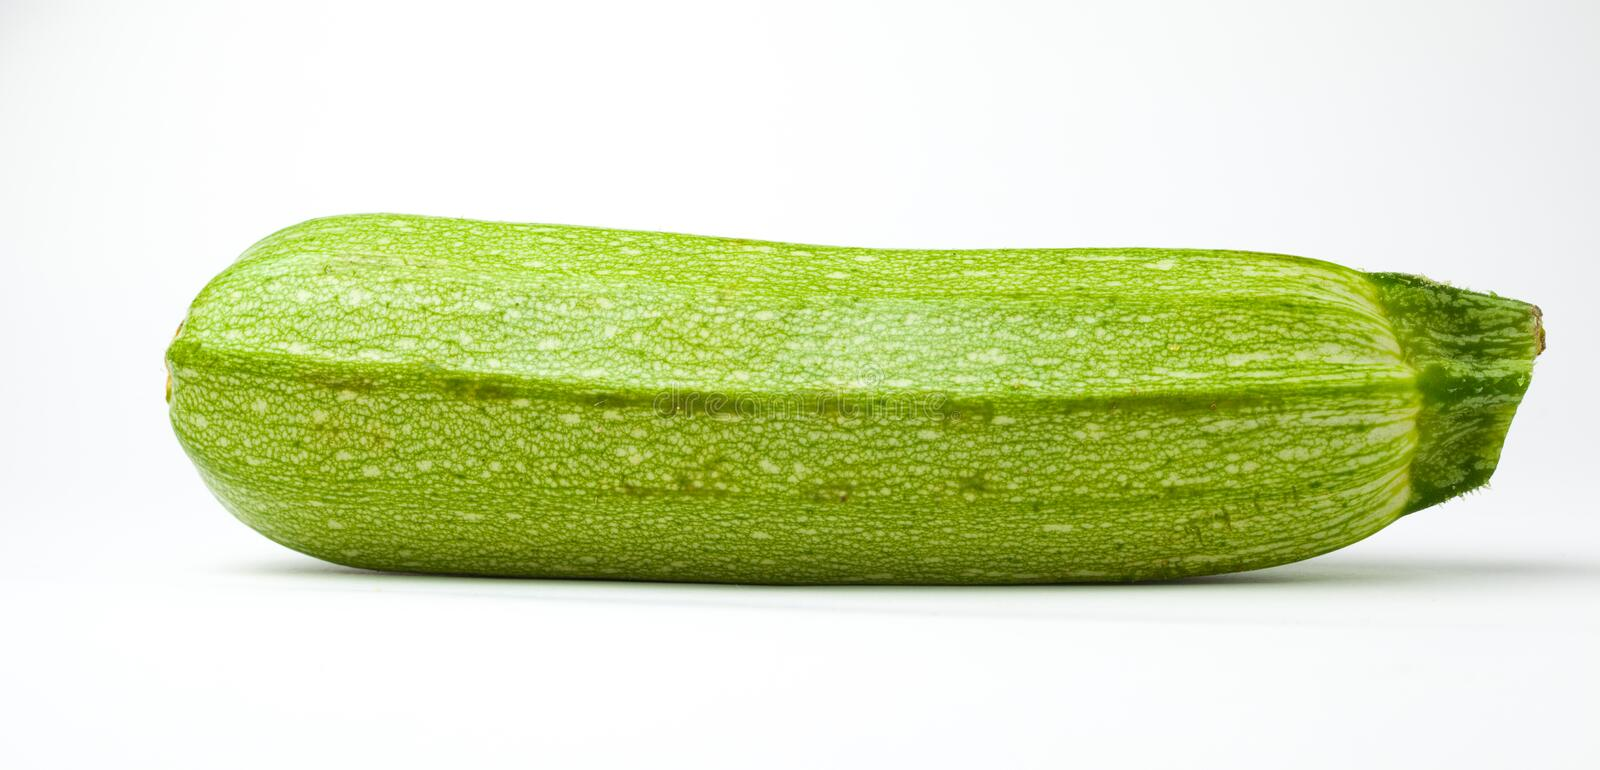 Zucchini. Sliced zucchini on white background royalty free stock image